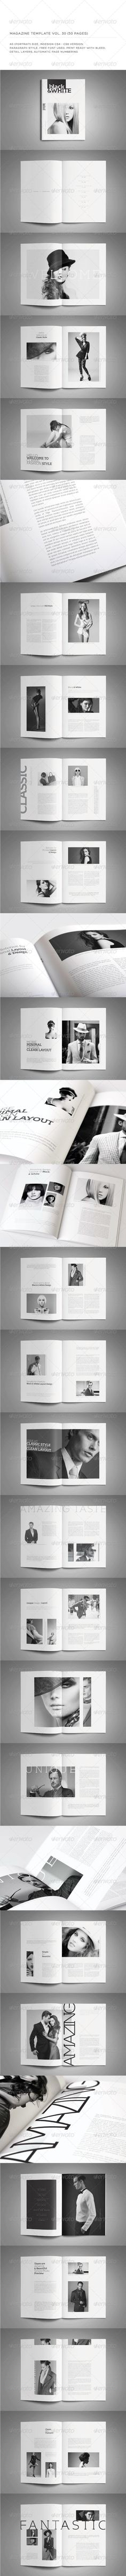 Indesign template vol 30 You can download this template here : http://graphicriver.net/item/a5-portrait-50-pages-mgz-vol-30/7655061?WT.oss_phrase=&WT.oss_rank=12&WT.z_author=Shafura&WT.ac=search_thumb